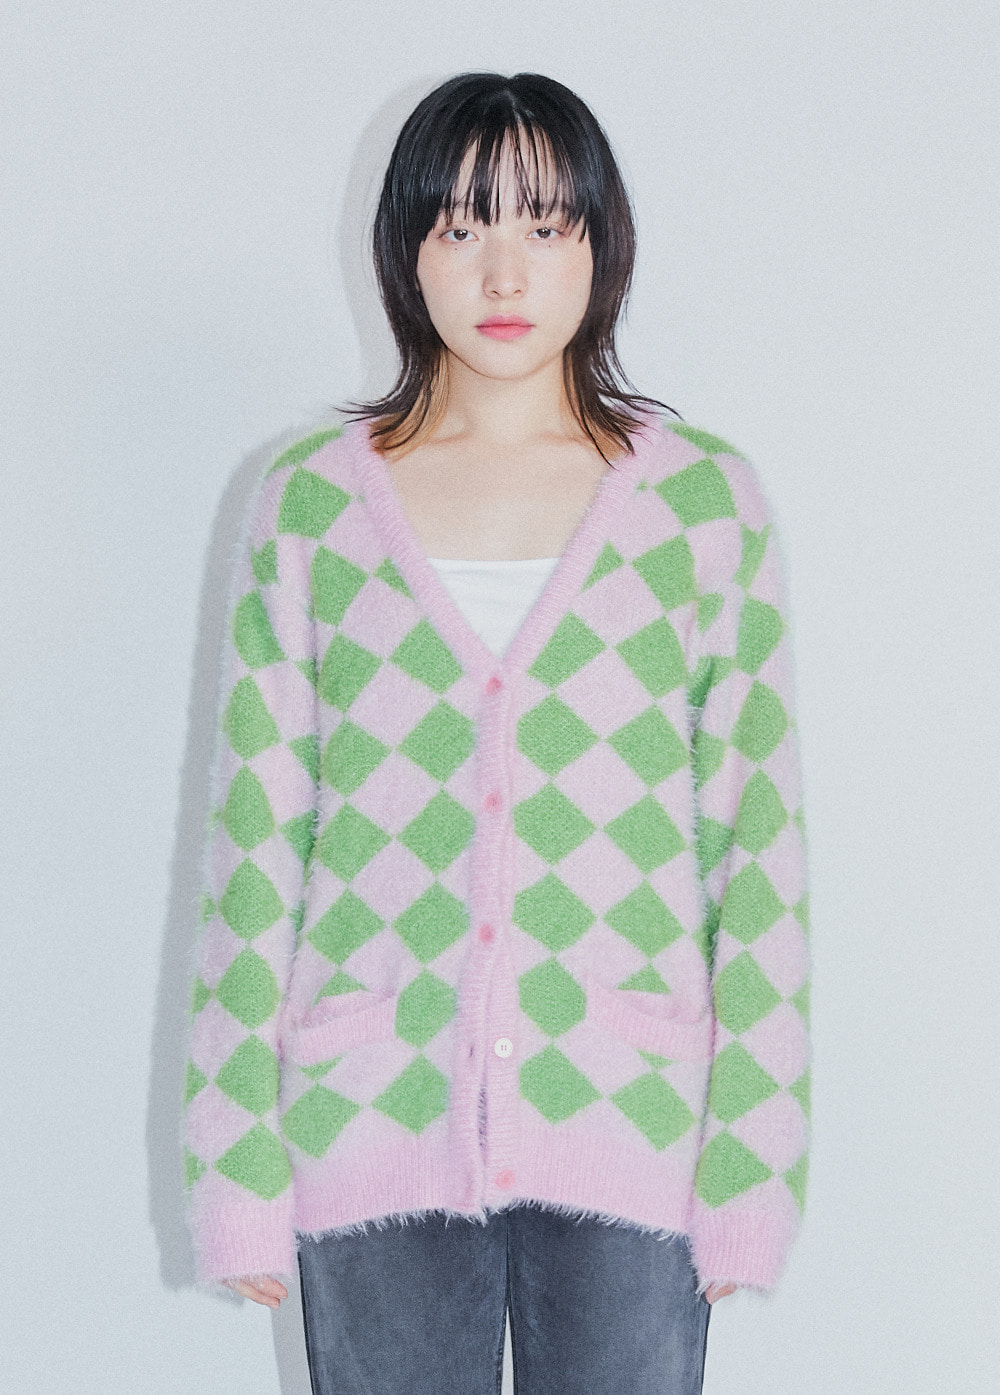 KANCO ARGYLE CARDIGAN pink/green